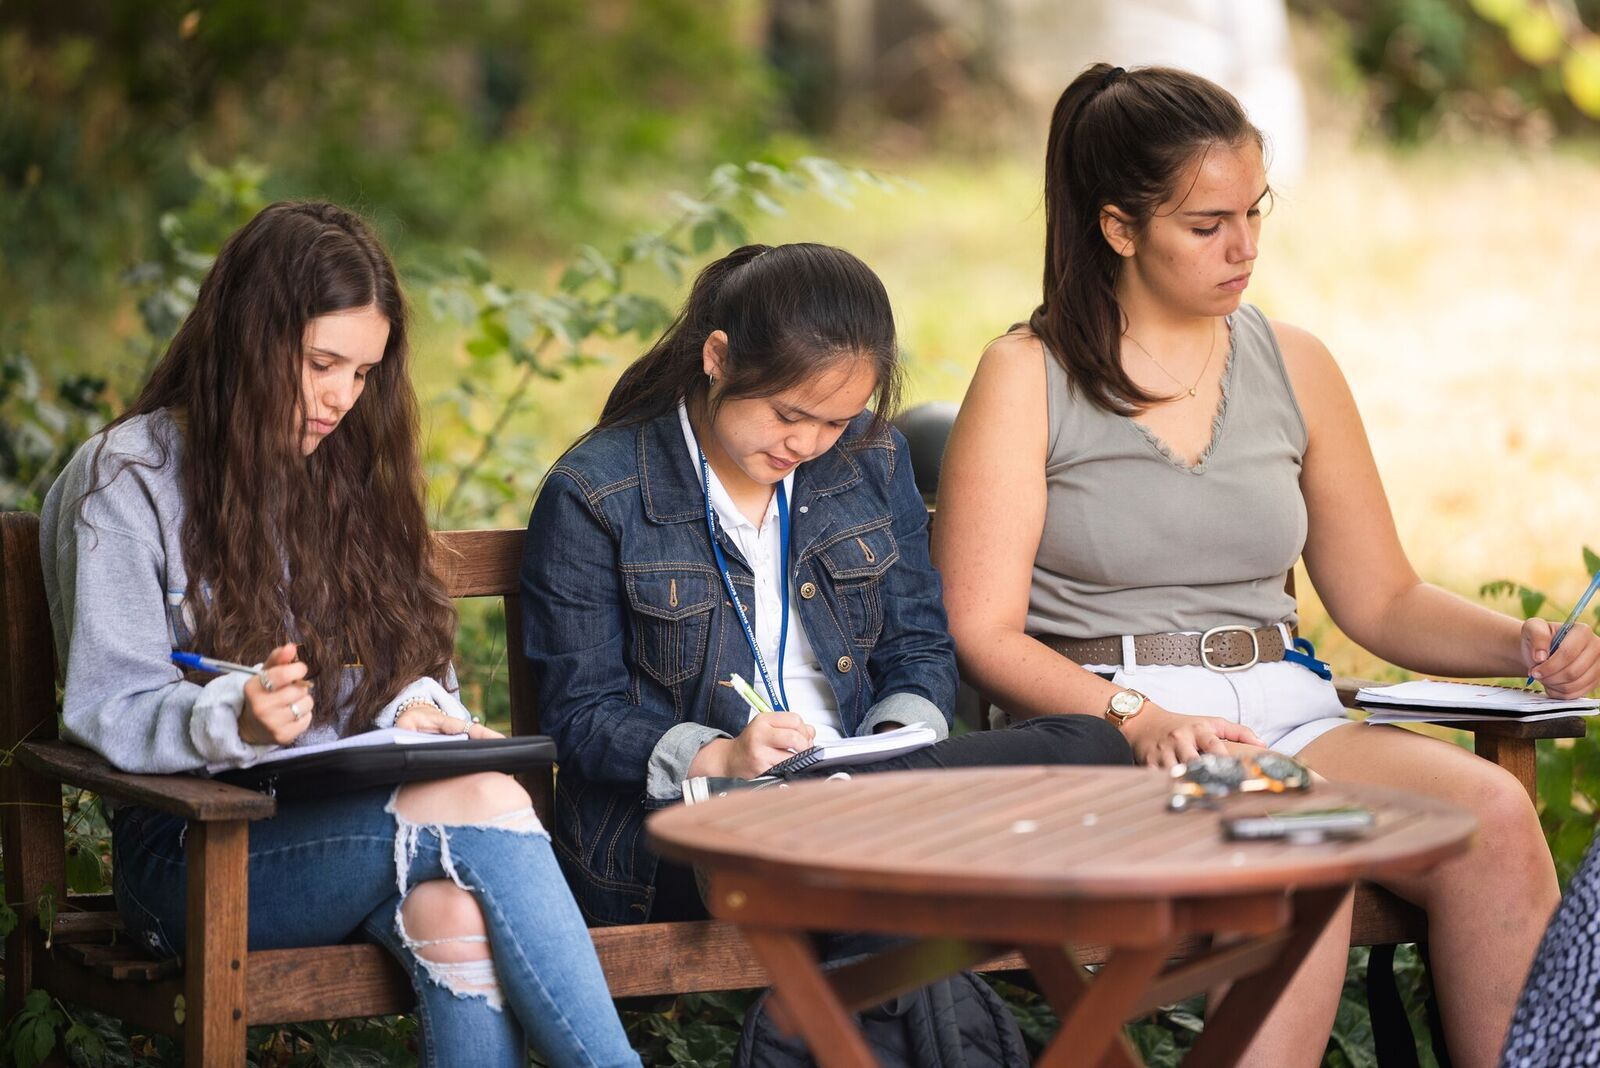 Girls studying at outdoor tutorial